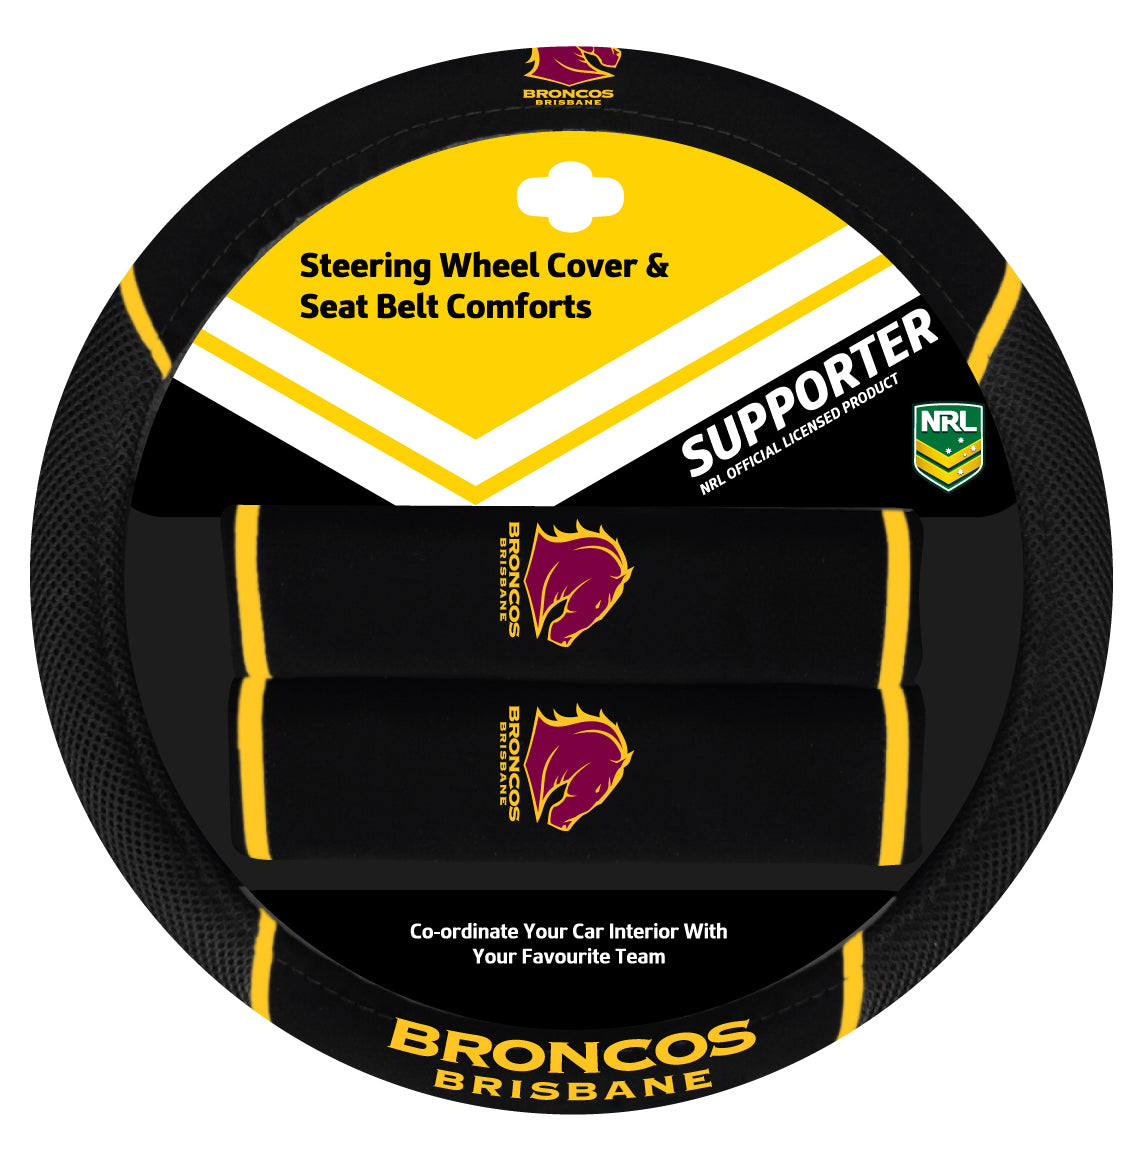 Broncos Steering Wheel Cover